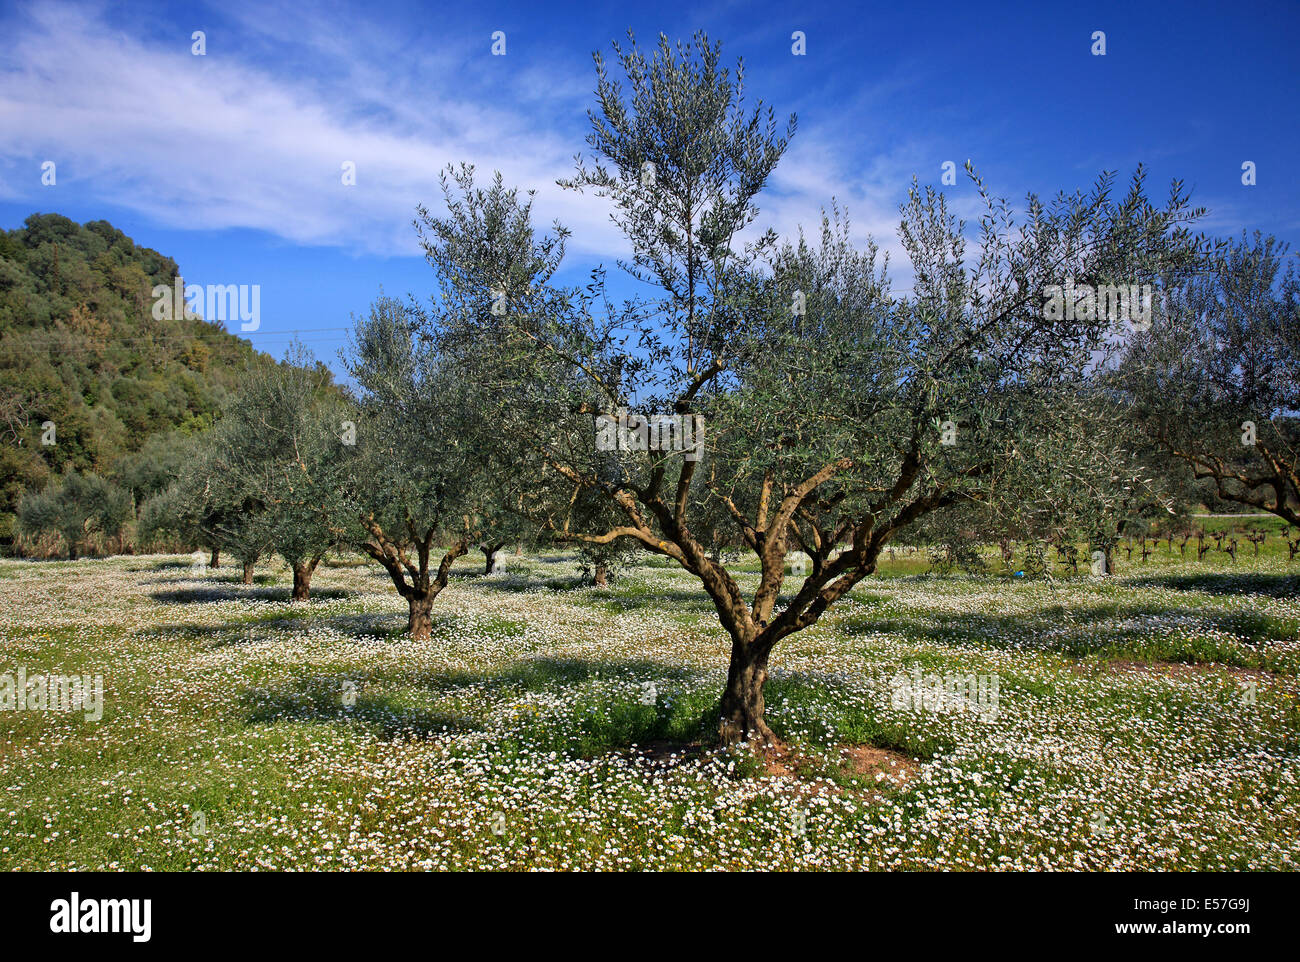 Olive trees close to Amfithea village, Messene municipality, Messenia, Peloponnese, Greece. - Stock Image